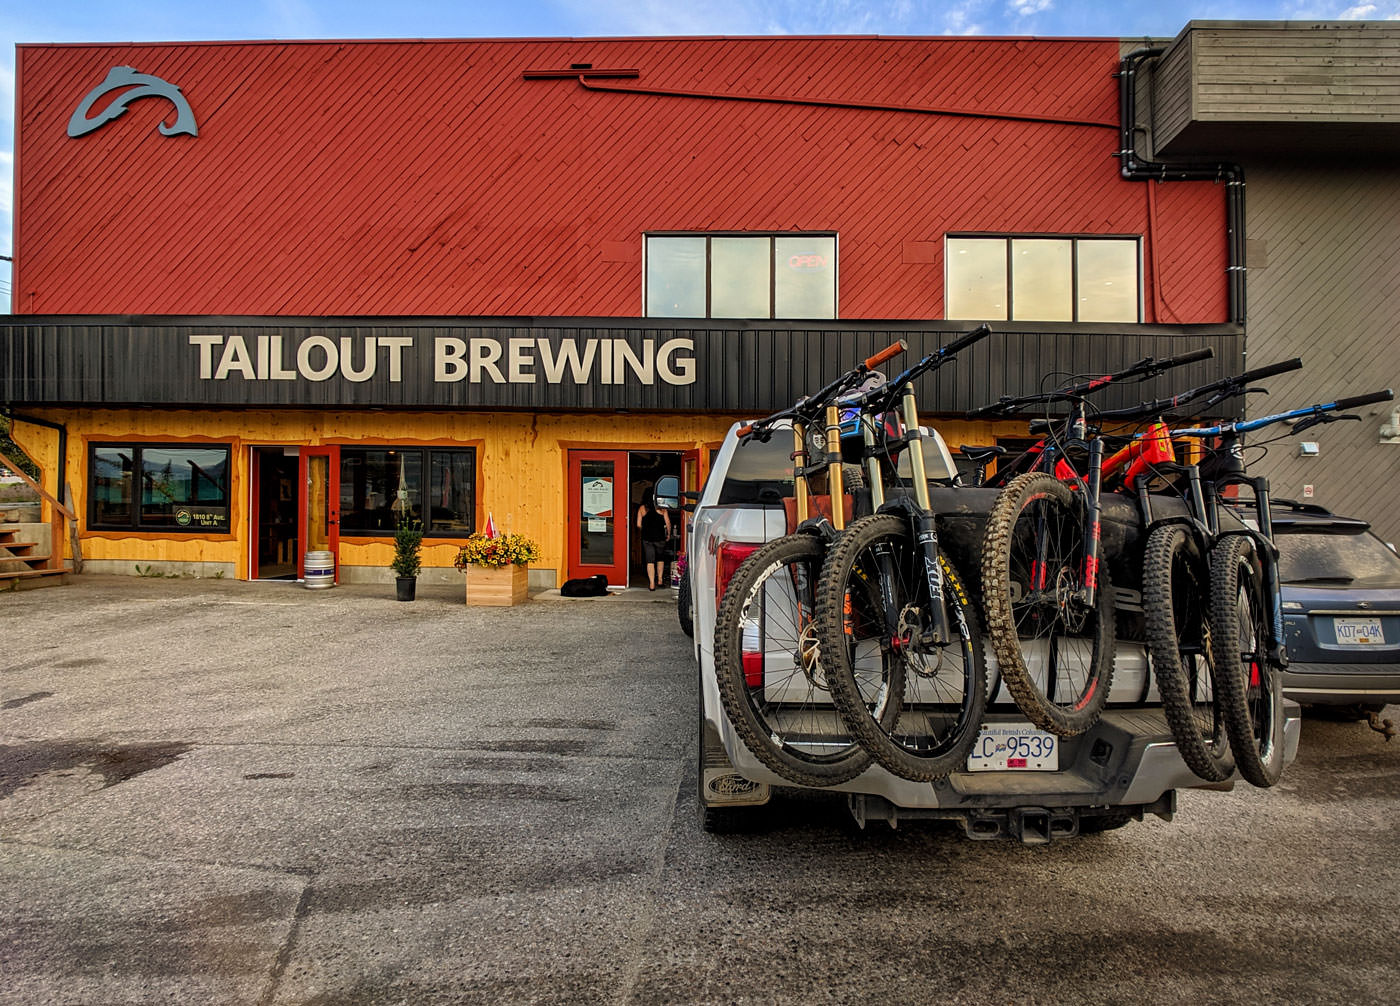 West Kootenay's Tailout Brewing parking lot with mountain bikes in truck